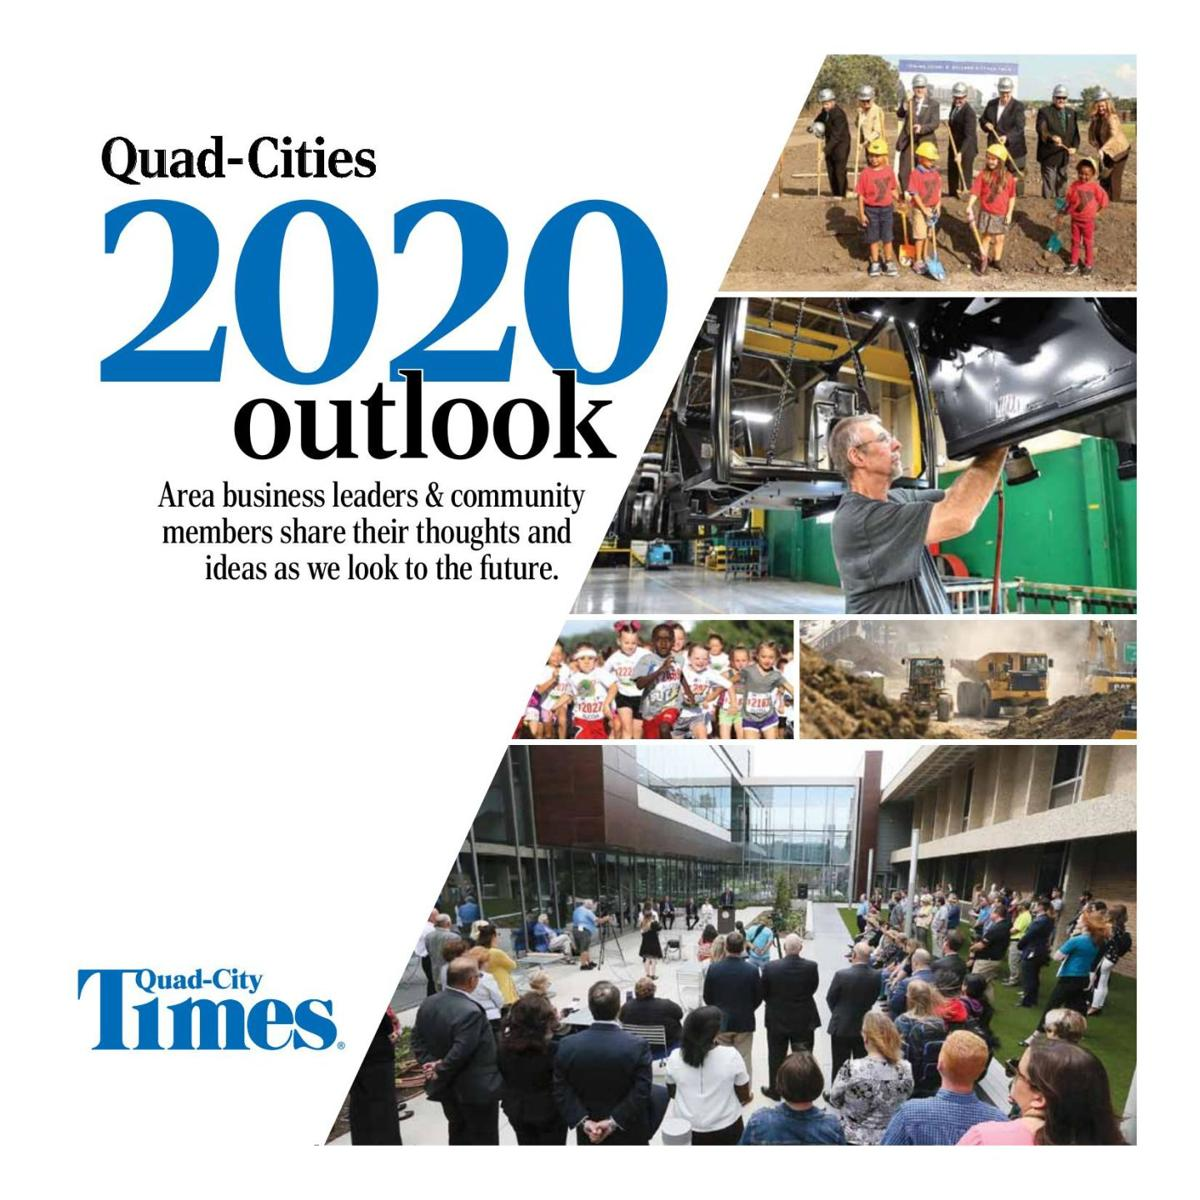 Quad-Cities 2020 Outlook